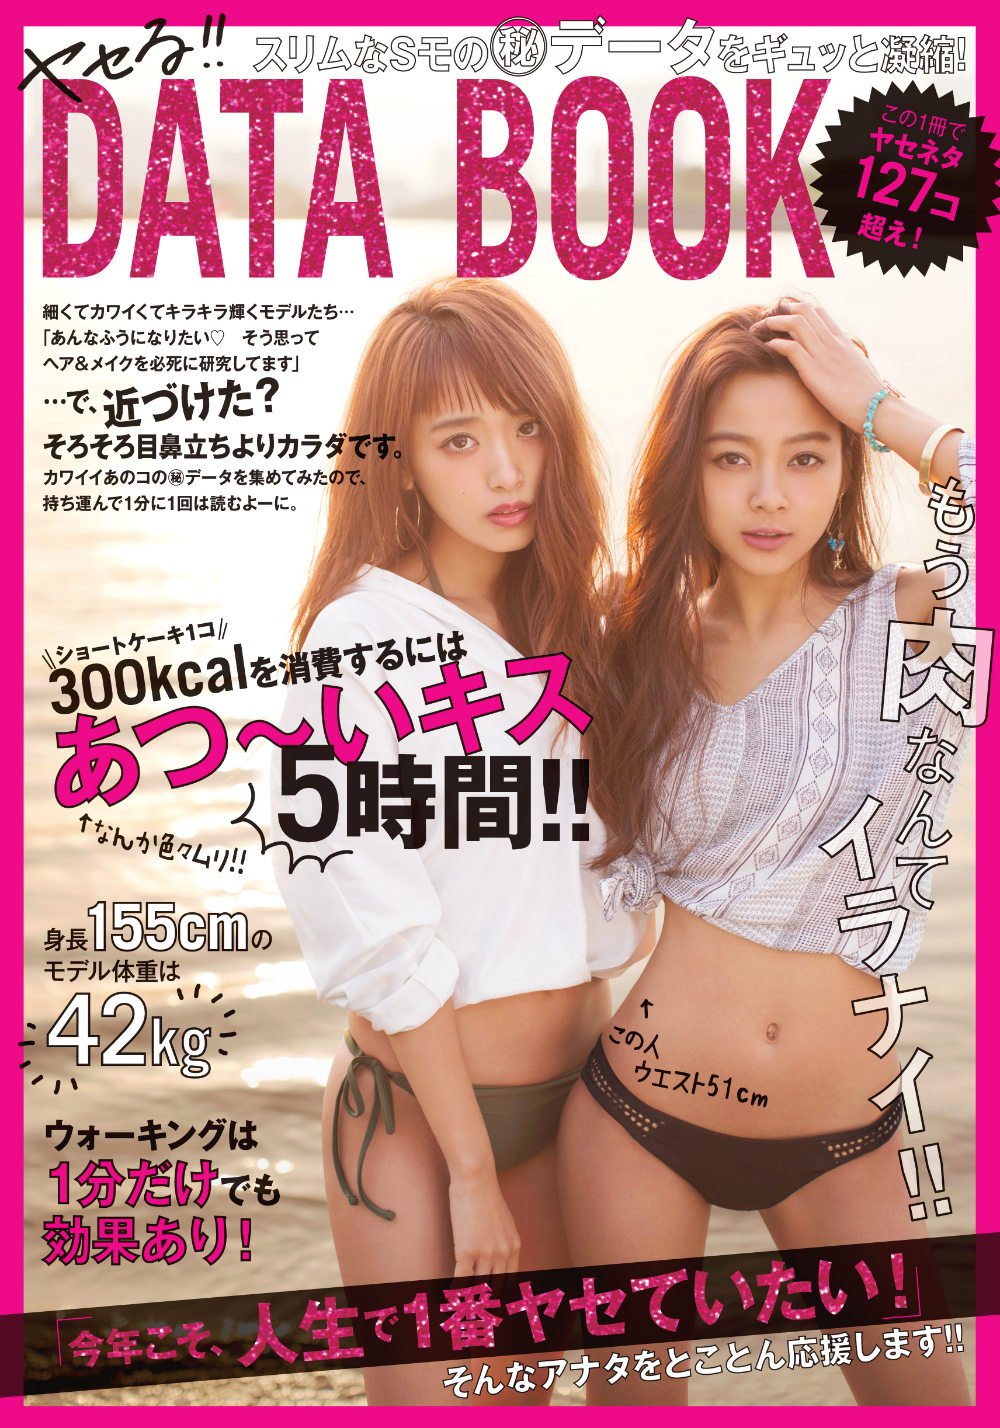 S Cawaii!特別編集 全力ダイエットBOOK